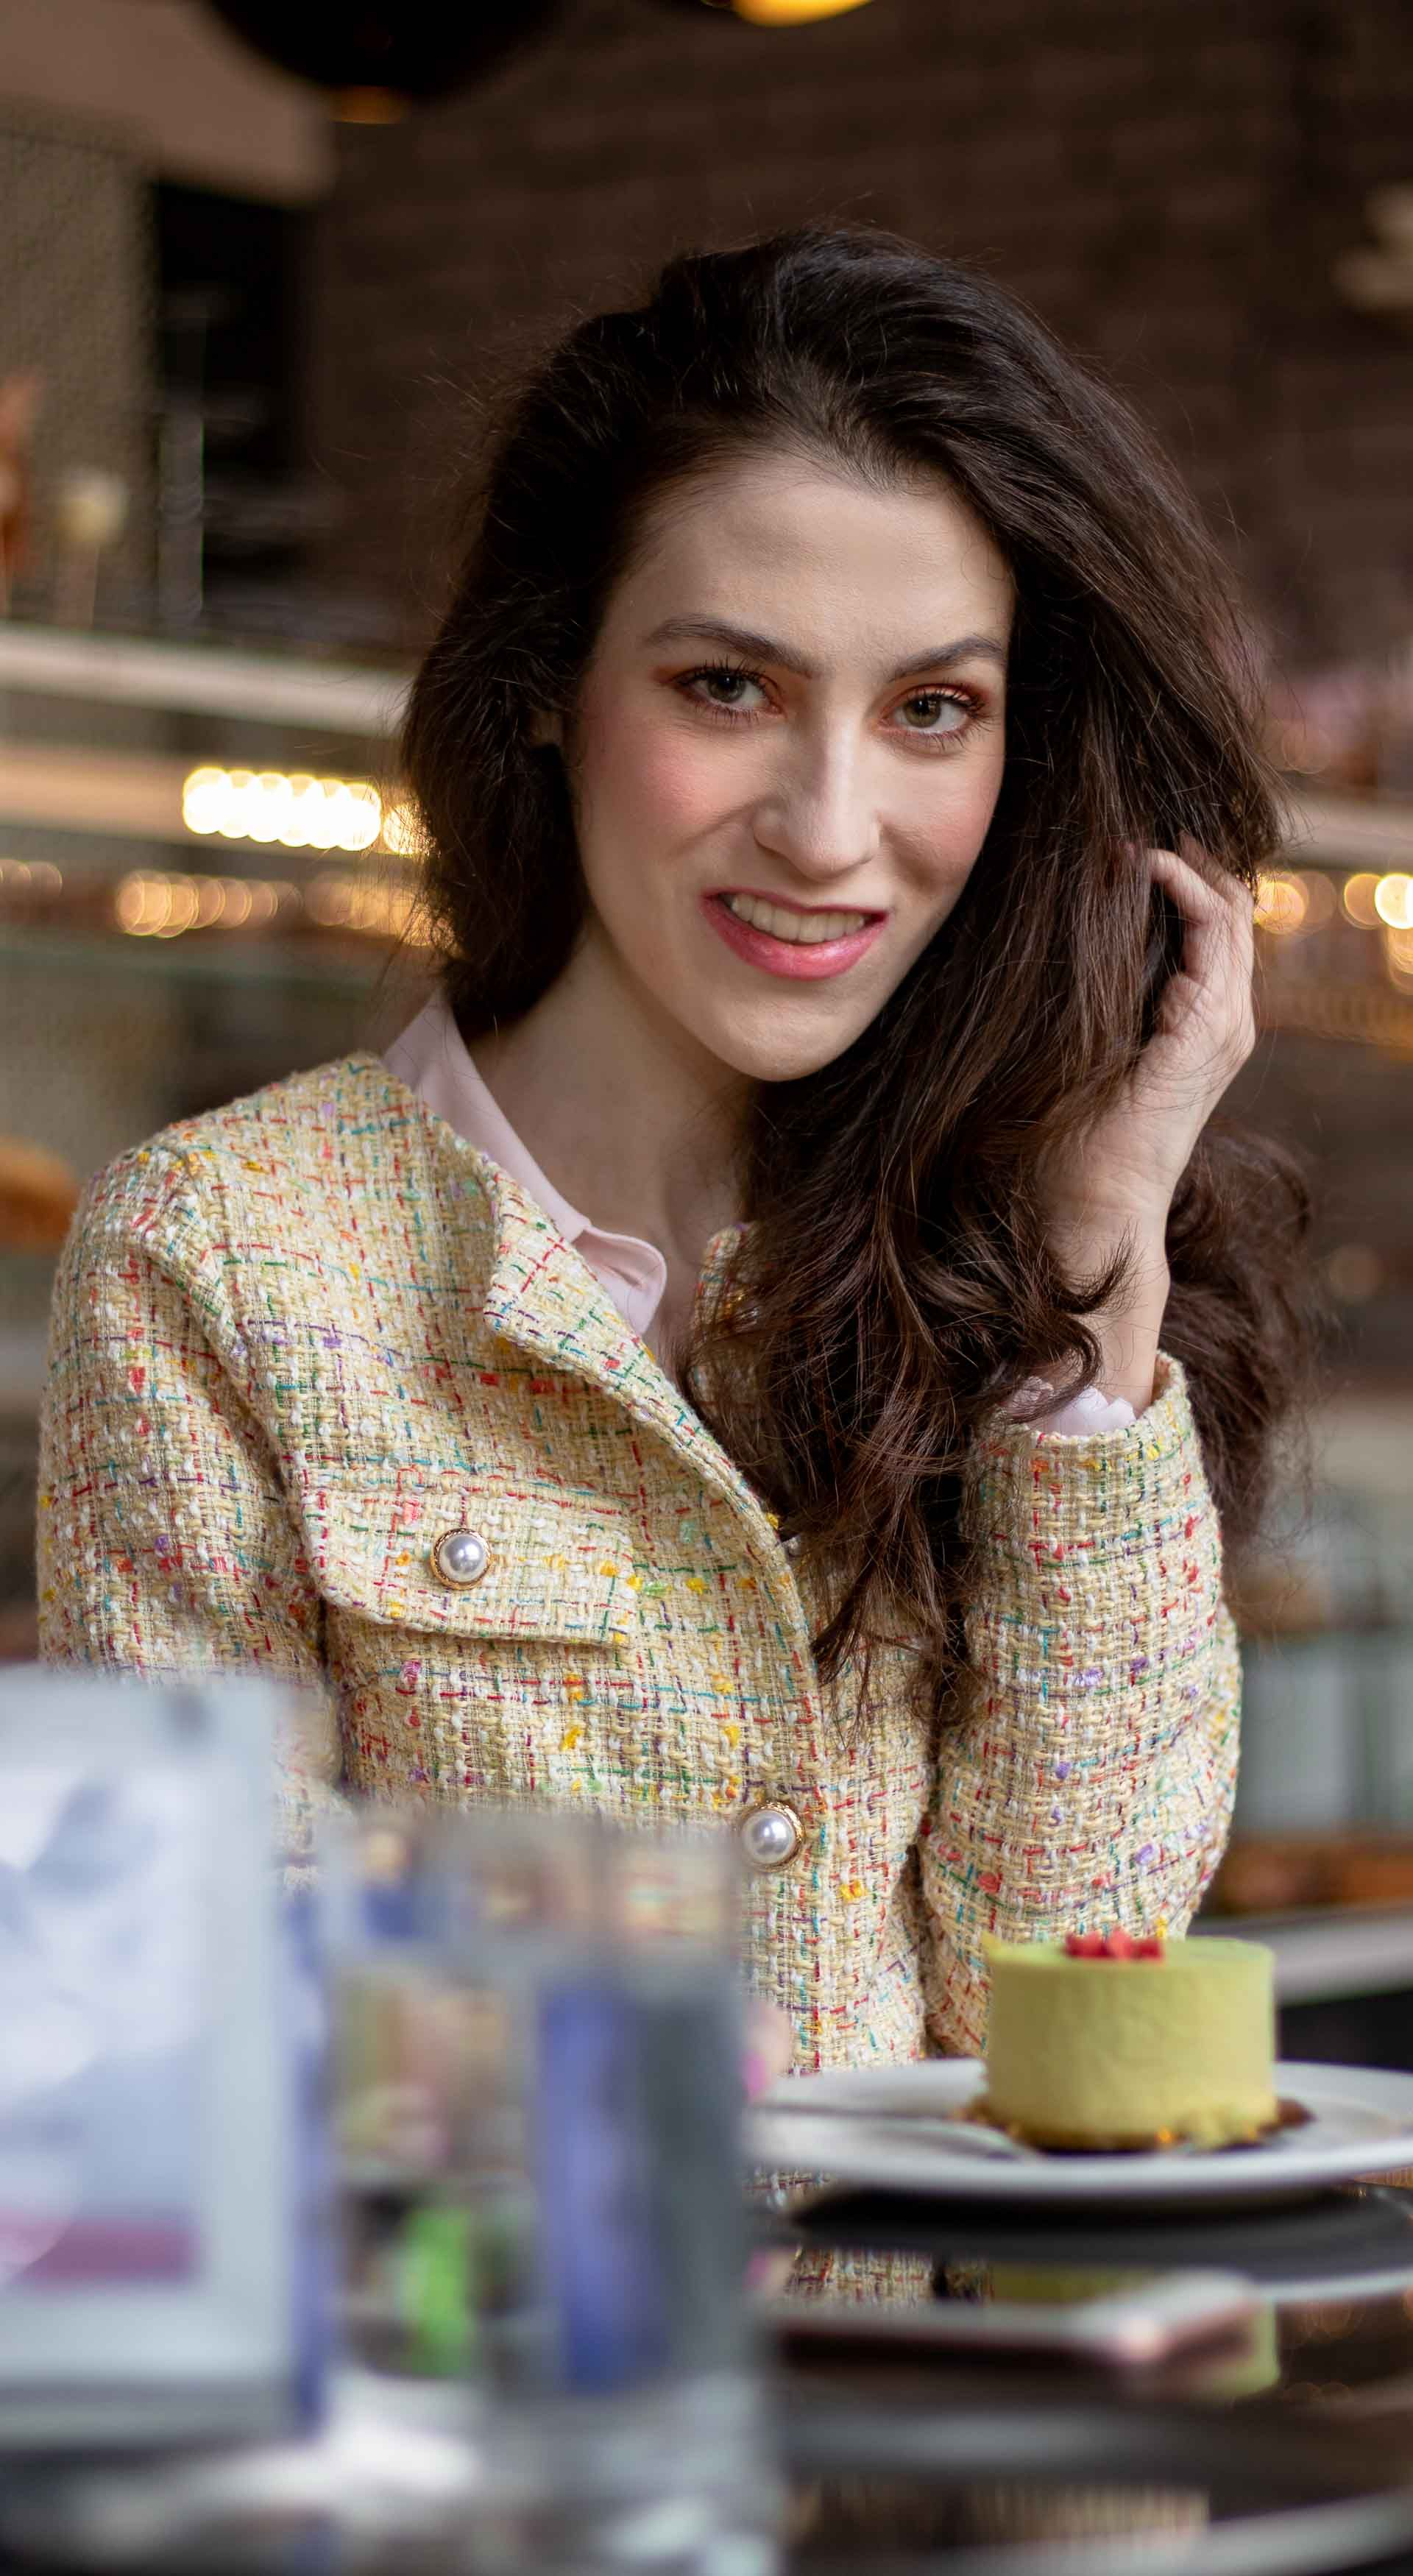 bb154e10d59 Must follow fashion blogger Veronika Lipar of Brunette from Wall Street  dressed in yellow tweed skirt suit